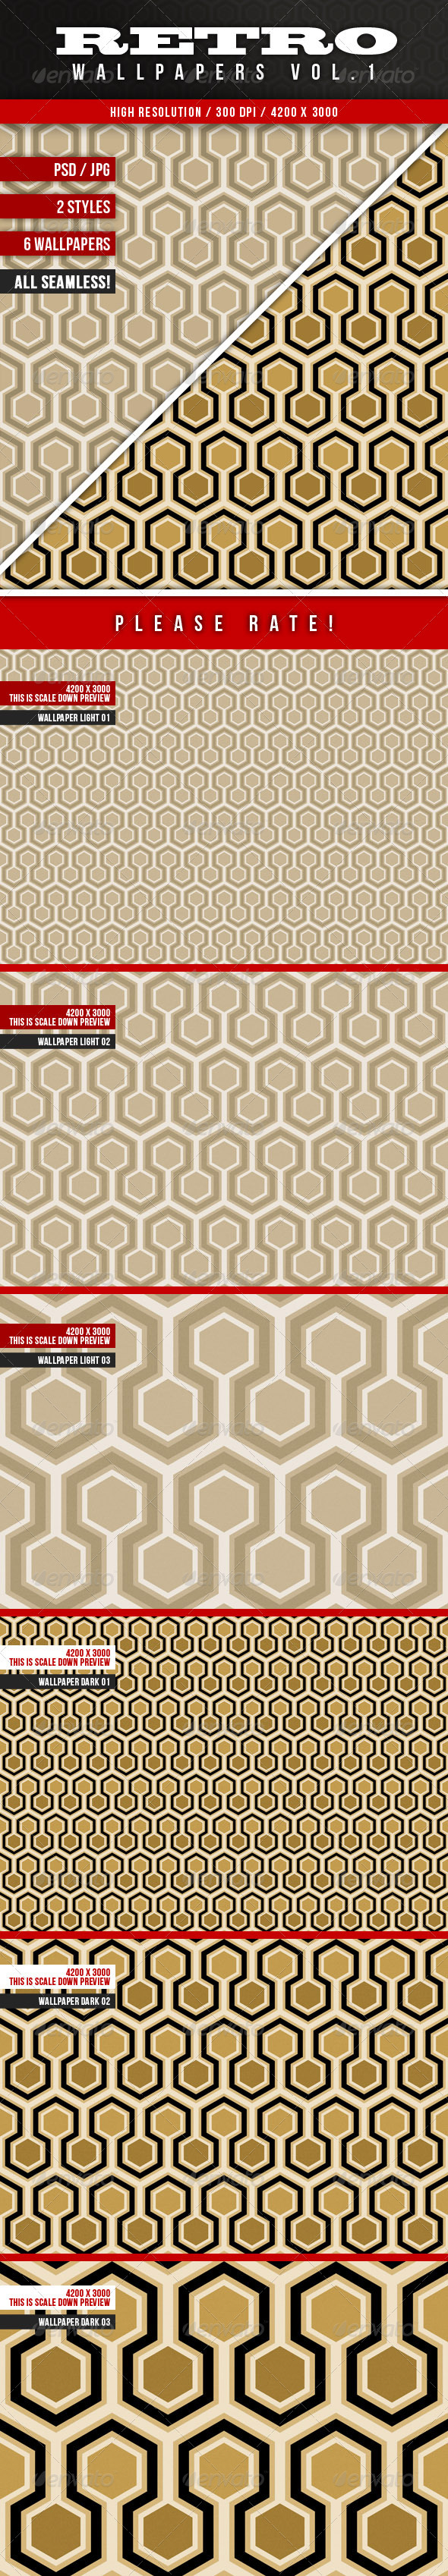 GraphicRiver Retro Wallpapers Vol.1 3655571